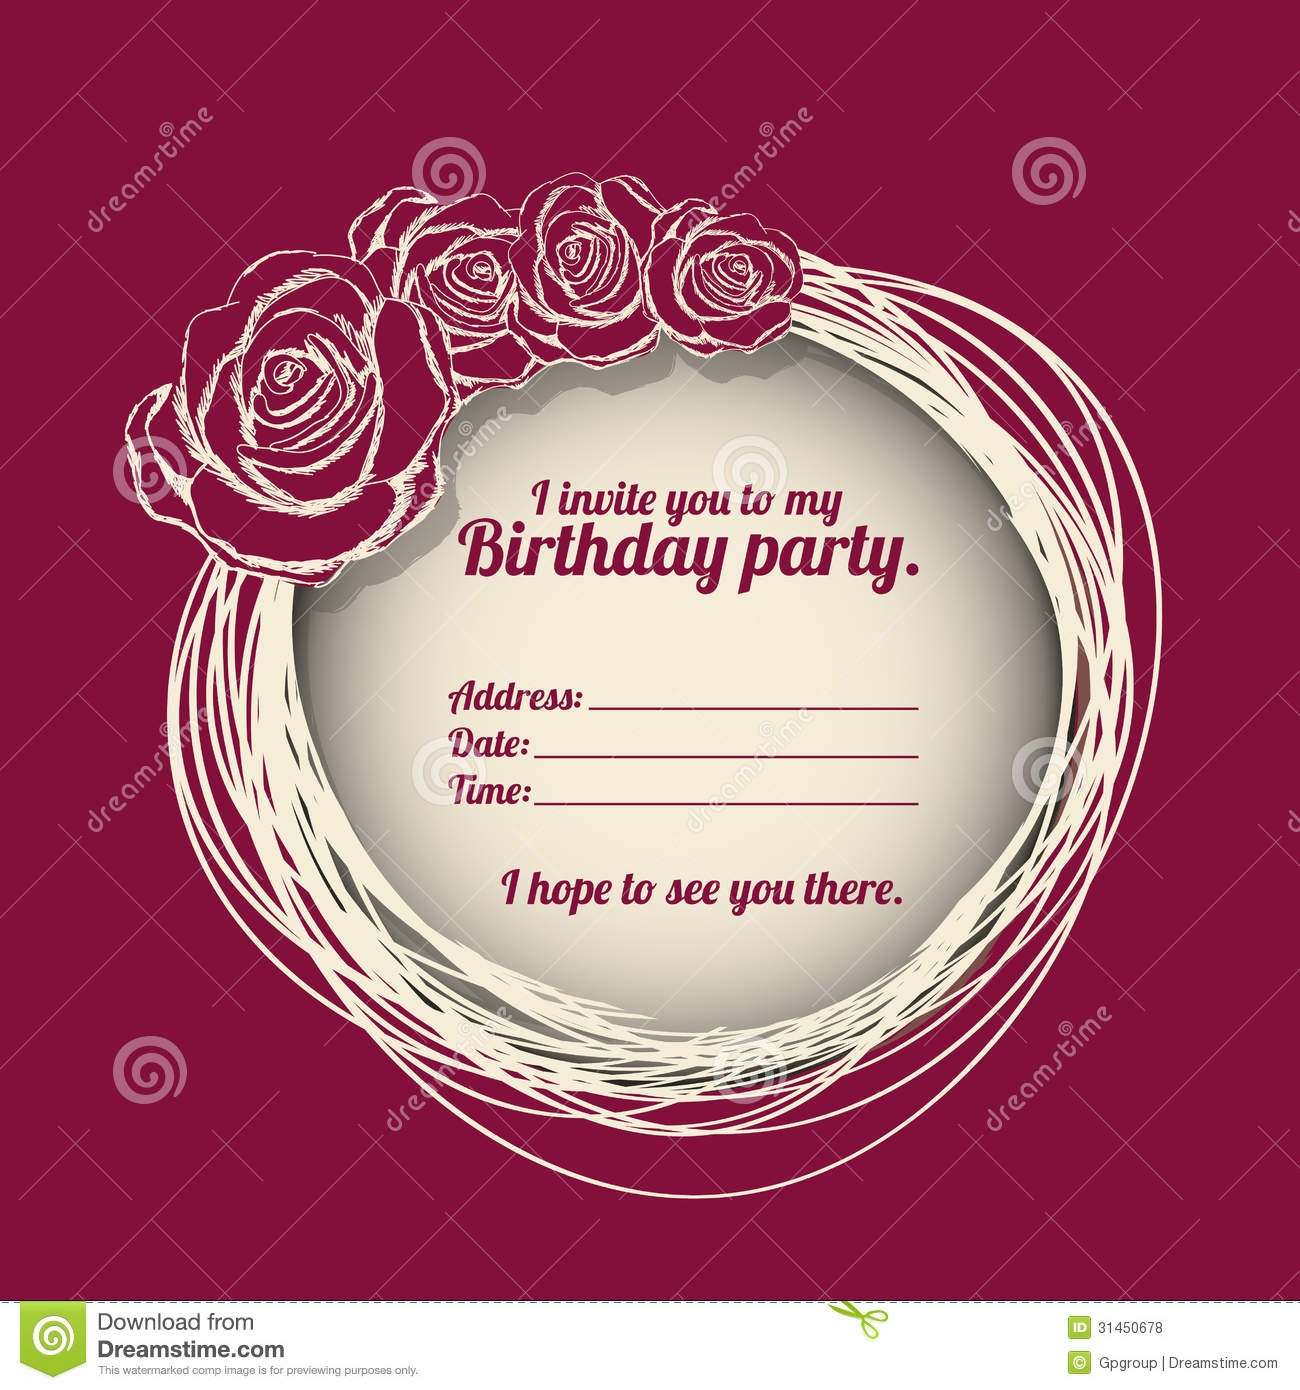 Birthday party invitation stock vector Illustration of bloom 31450678